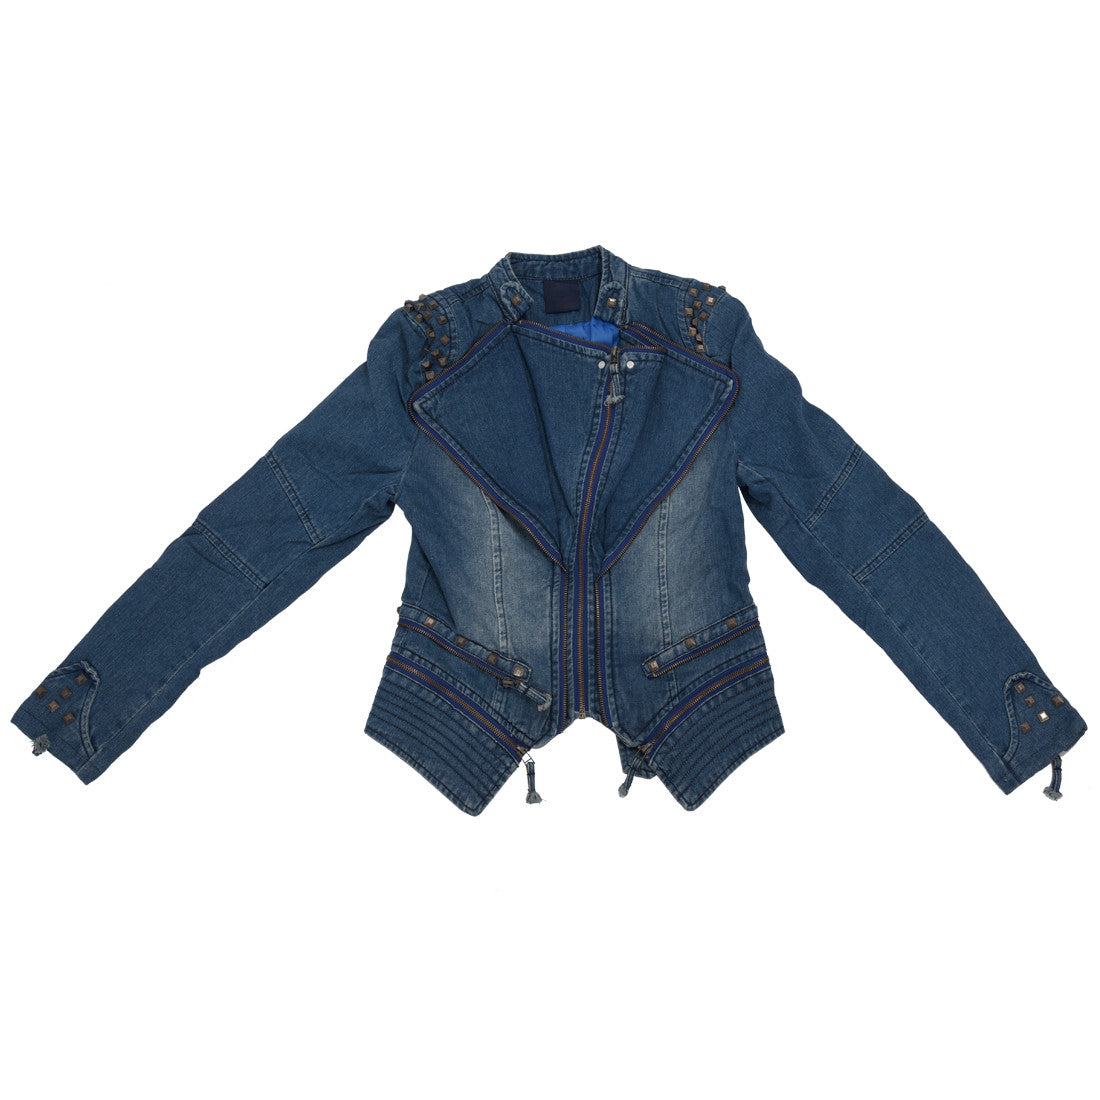 Edgy Denim Jacket with Studs